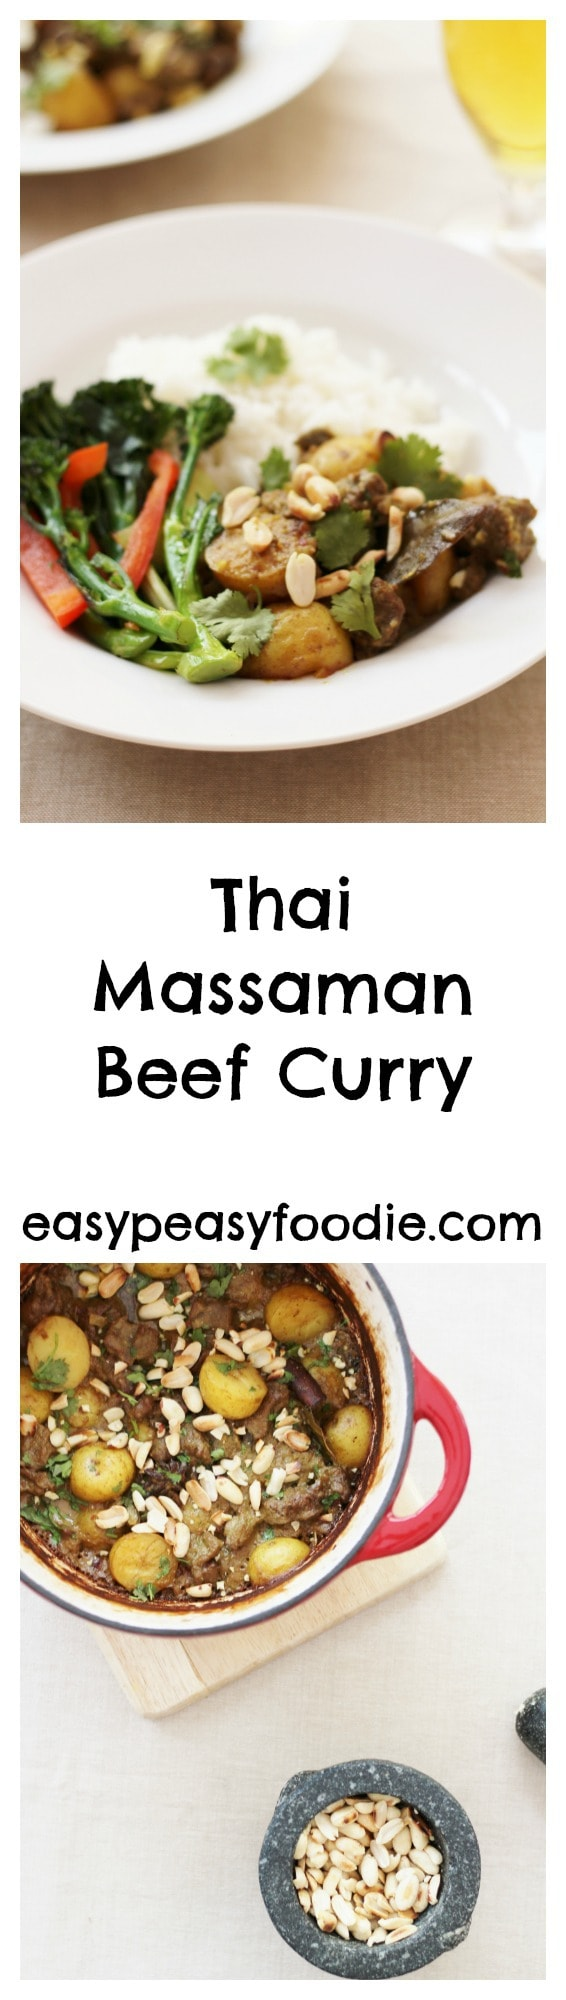 Thai Beef Massaman Curry Pinnable Image for Pinterest